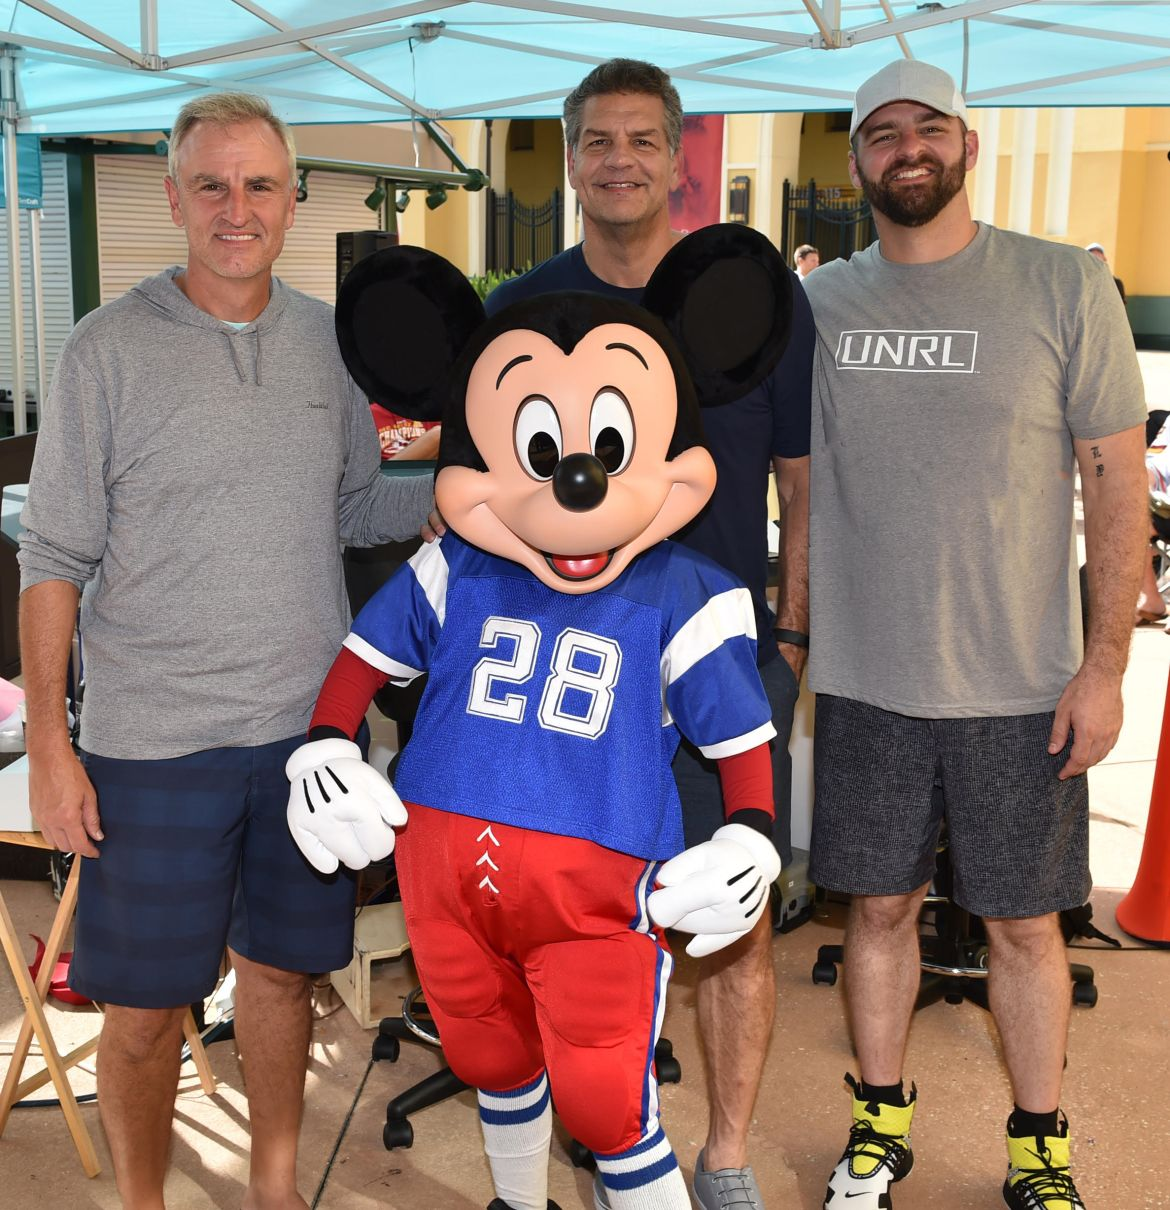 Mickey Mouse Joins Golic & Wingo at ESPN Wide World of Sports Complex